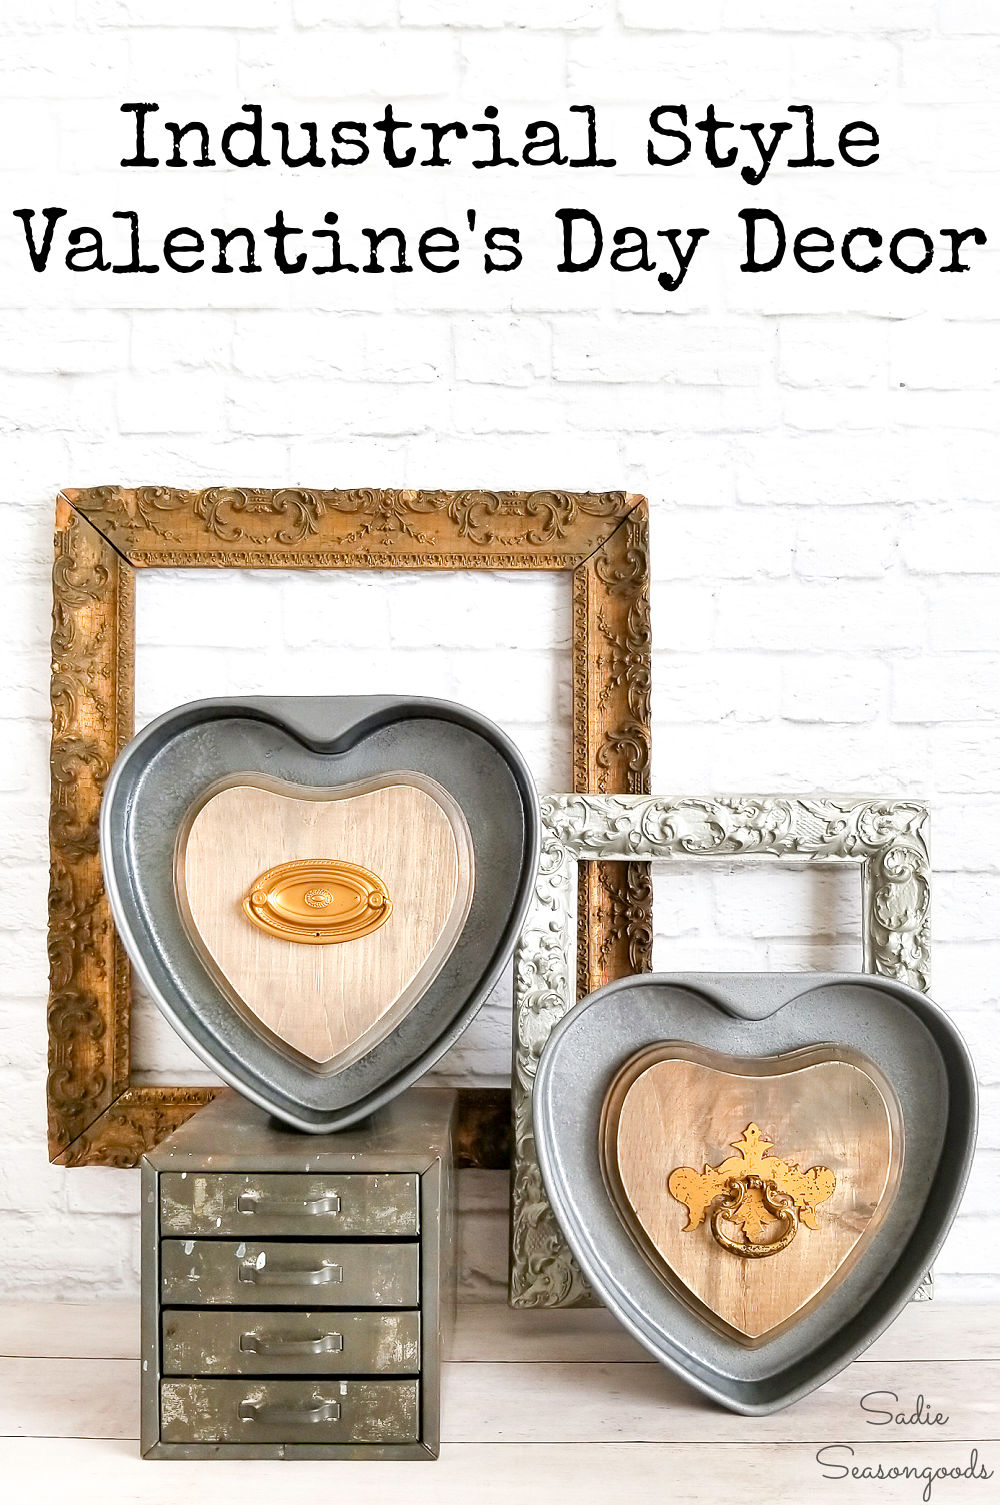 Heart cake pans as Valentine's Day home decor